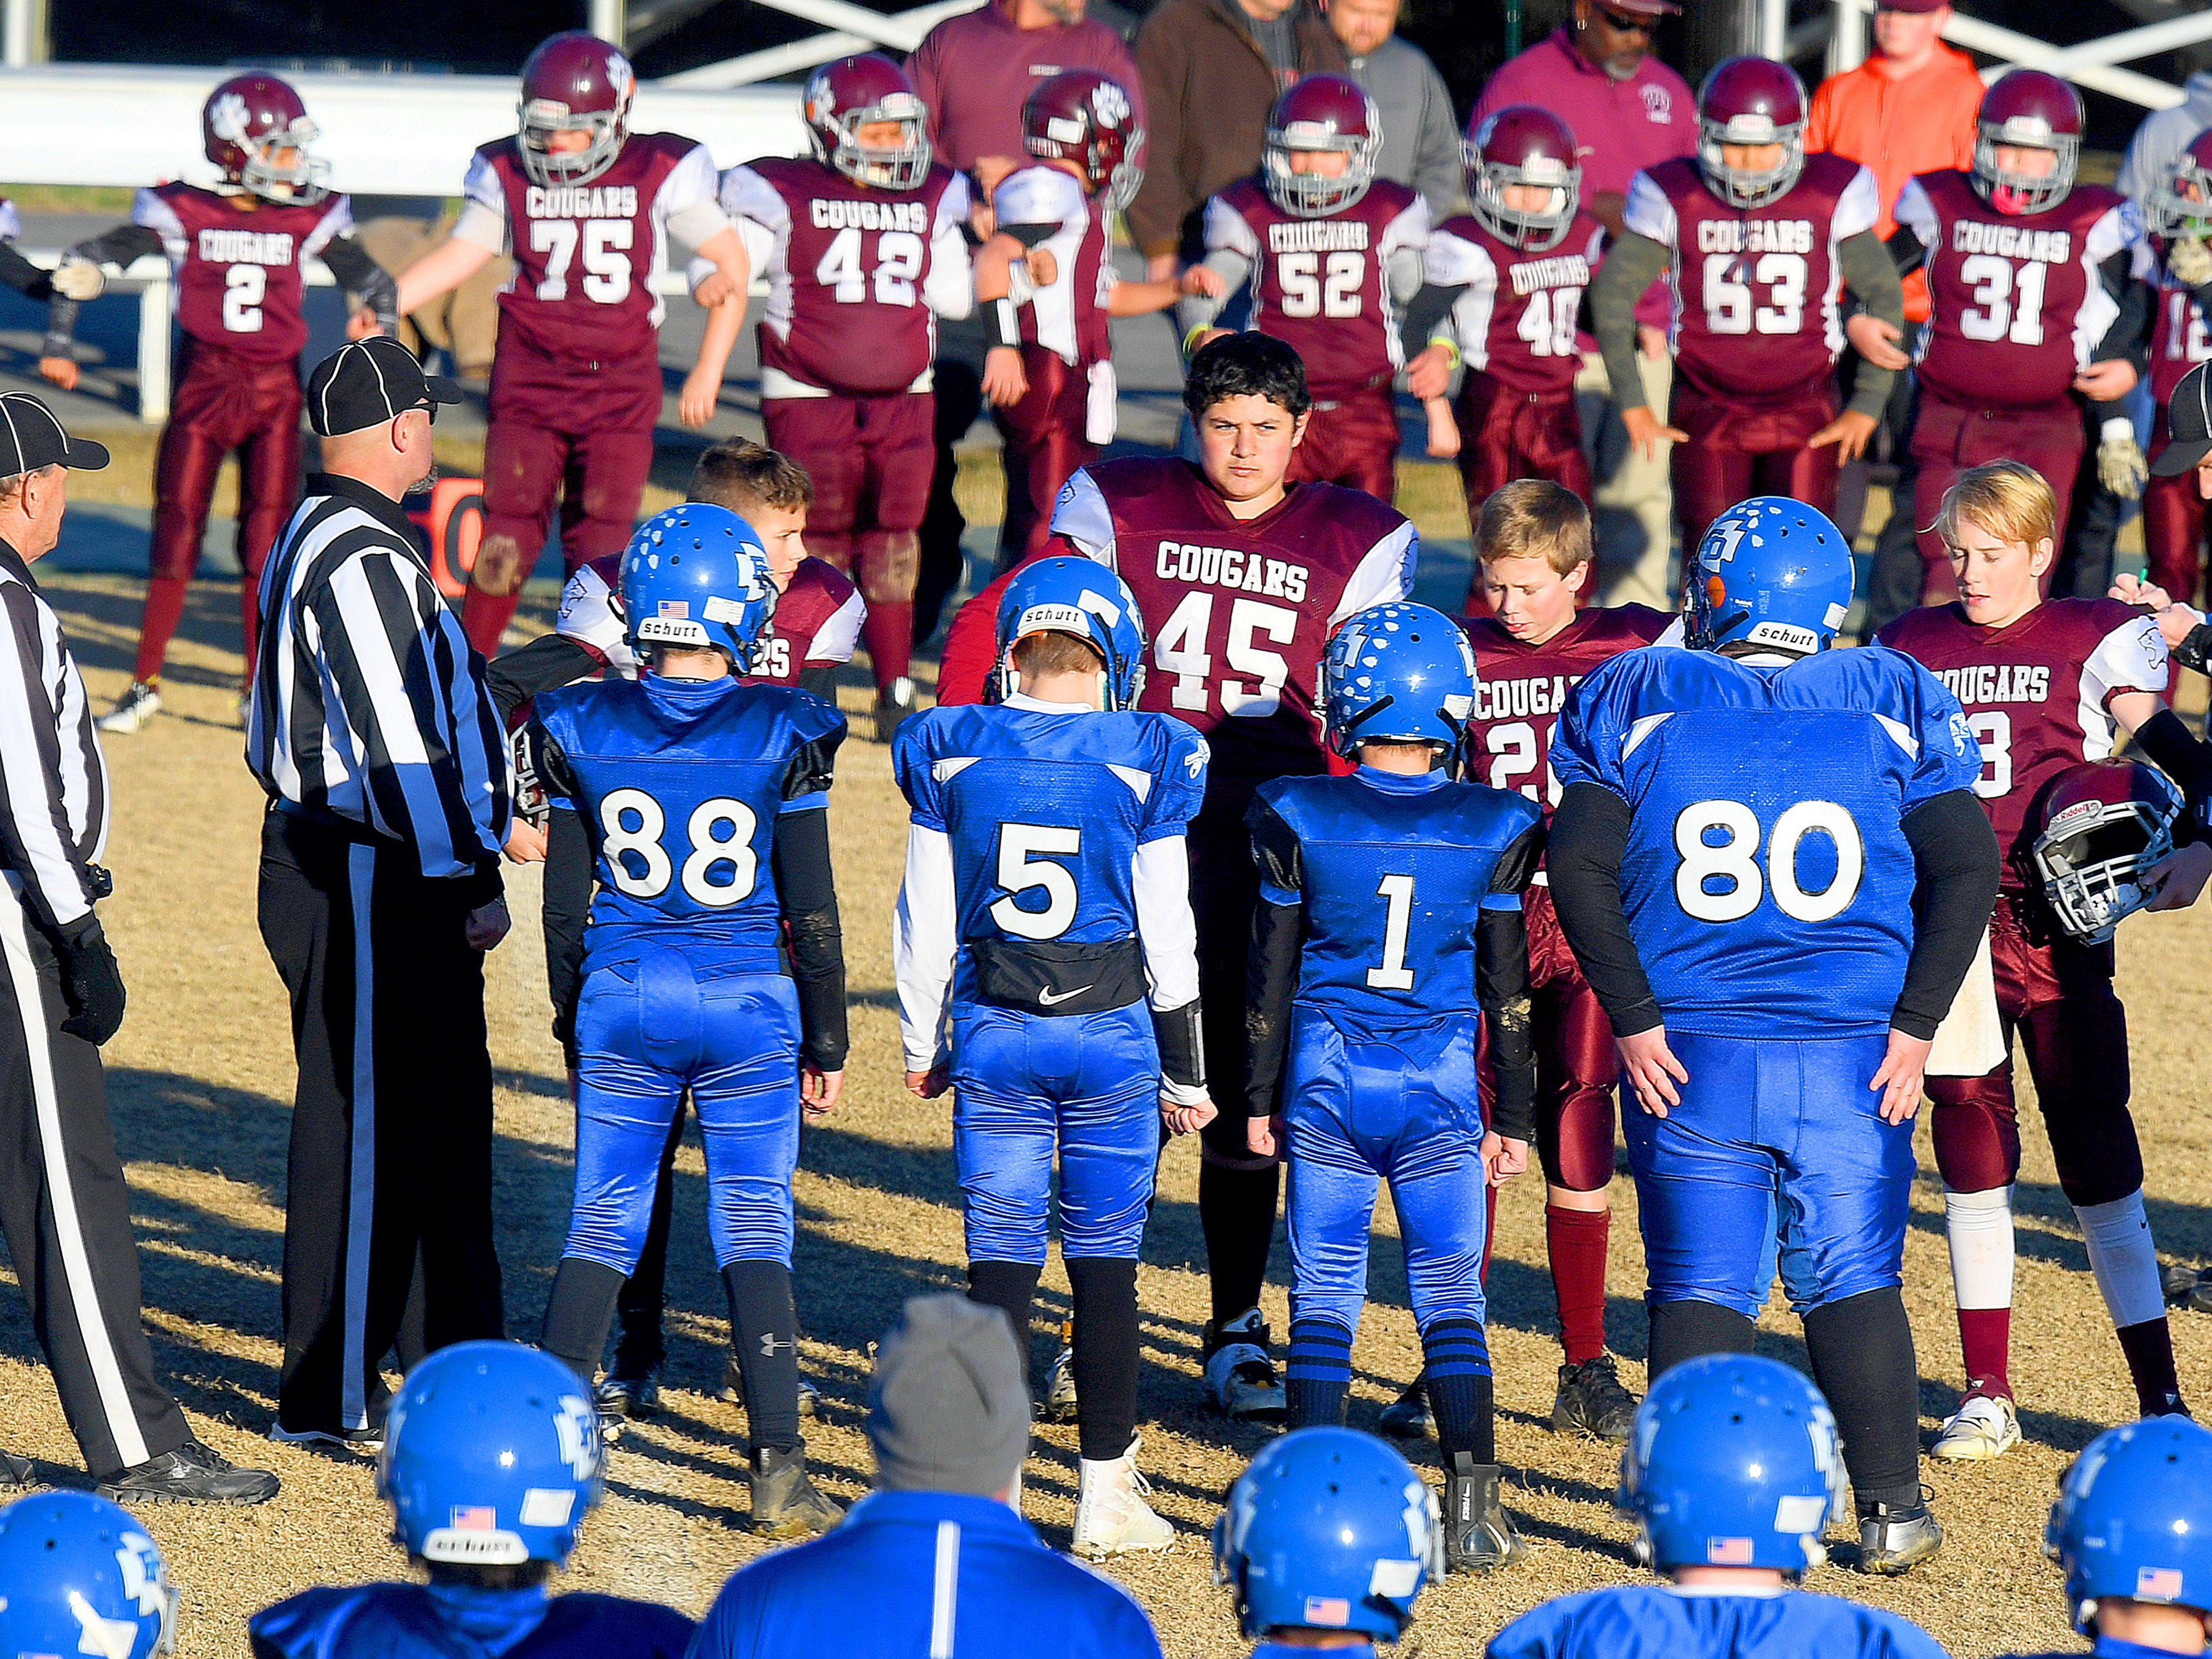 Team captains meet center of the field for Stuarts Draft and Fort Defiance for the coin toss ceremony during the Augusta County Quarterback Club Juniors Super Bowl in Fishersville on Sunday, Nov. 11, 2018. Fort Defiance beats Stuarts Draft, 13-12.